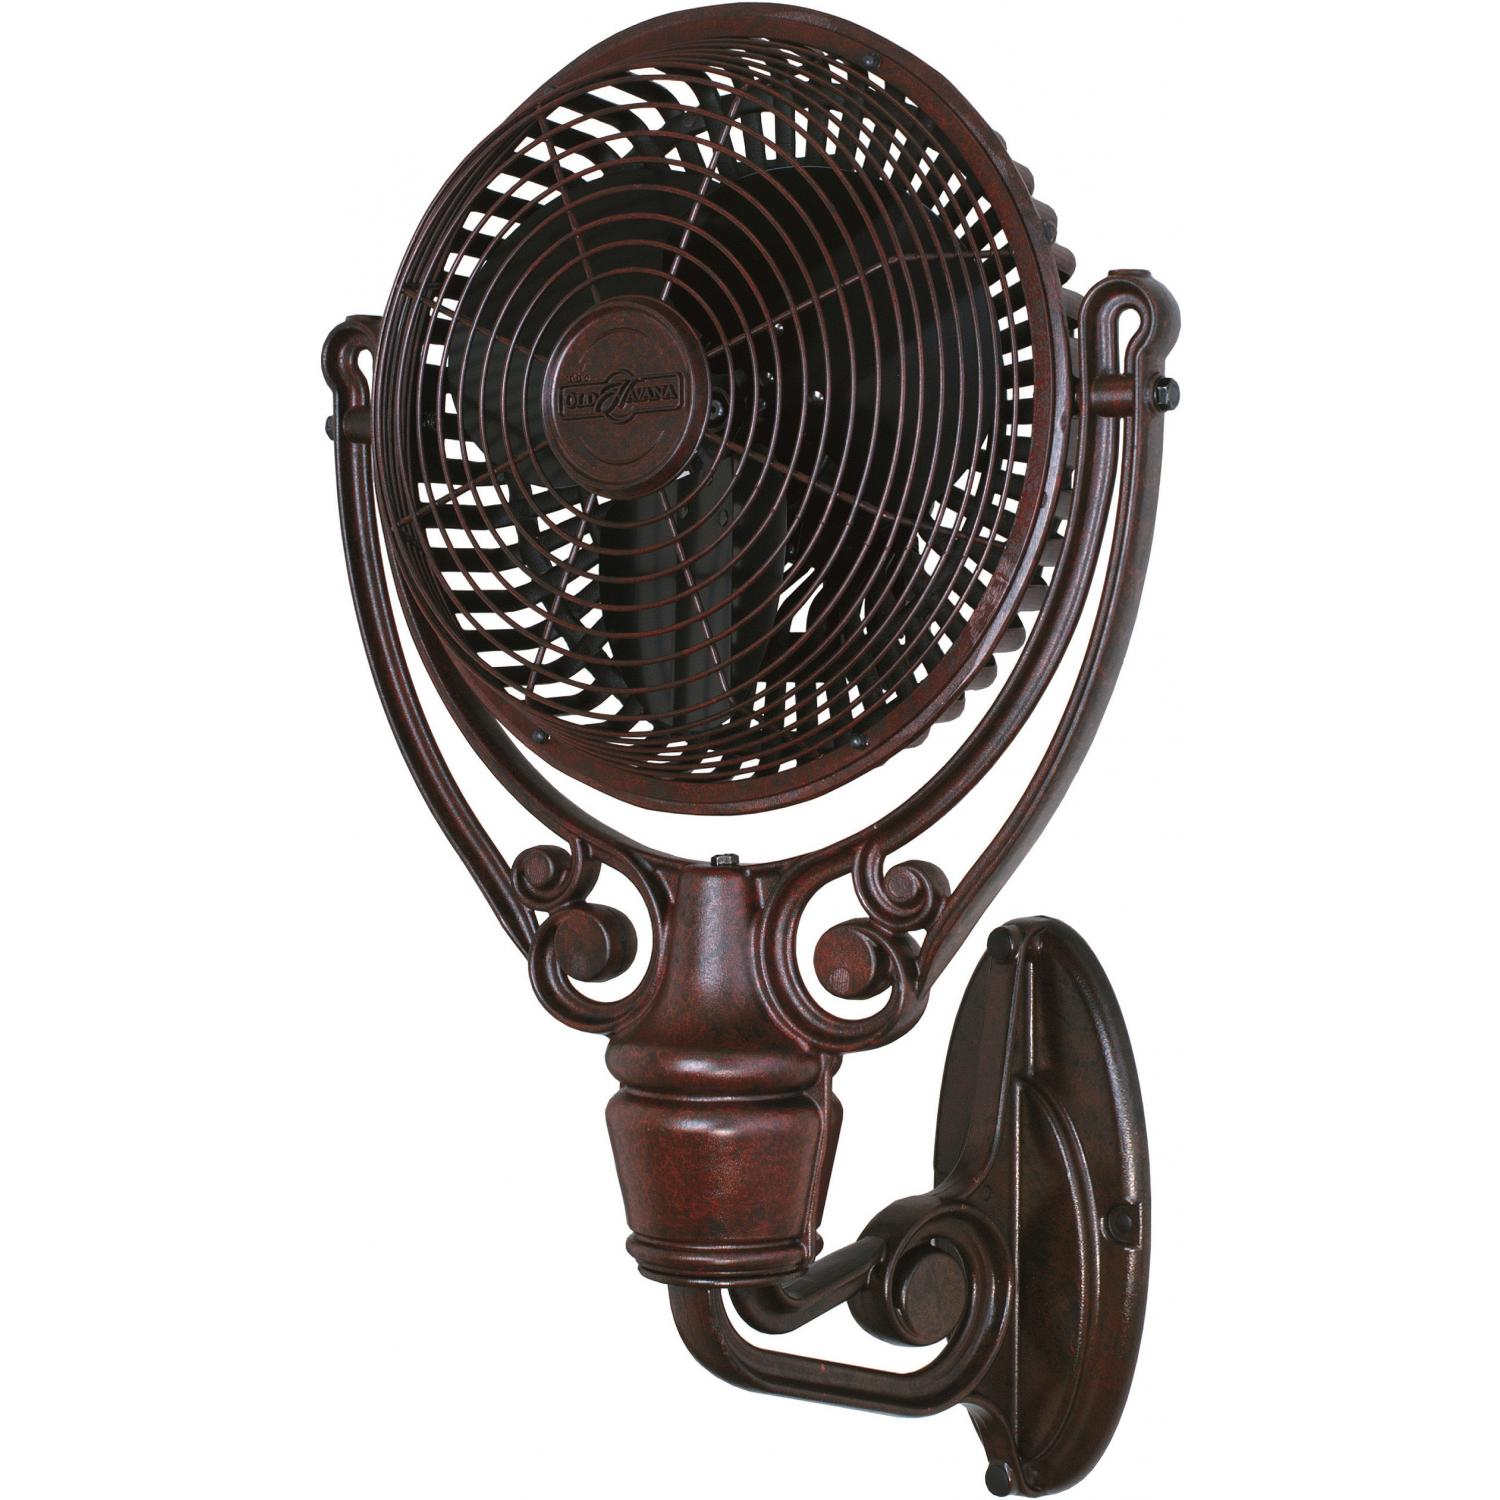 Fanimation Old Havana Outdoor Wall Mounted Fan Rust Bbqguys Wall Mounted Fan Wall Fans Wall Mount Fans